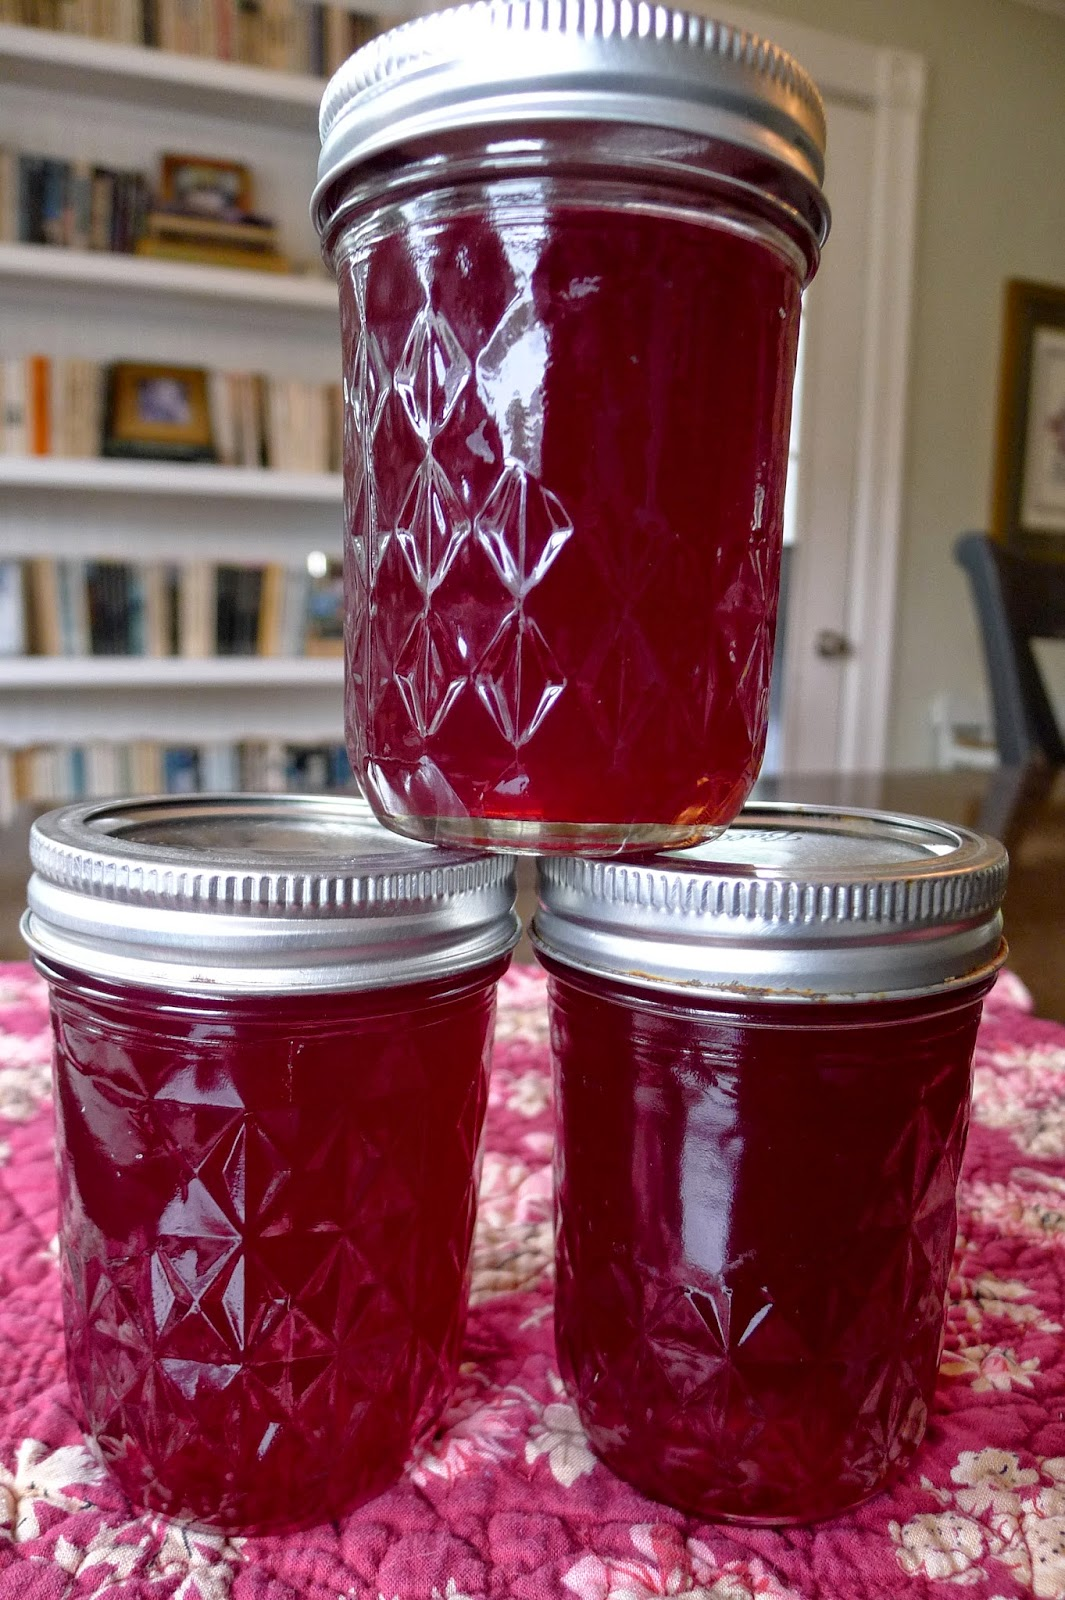 Red currant jelly, preserving